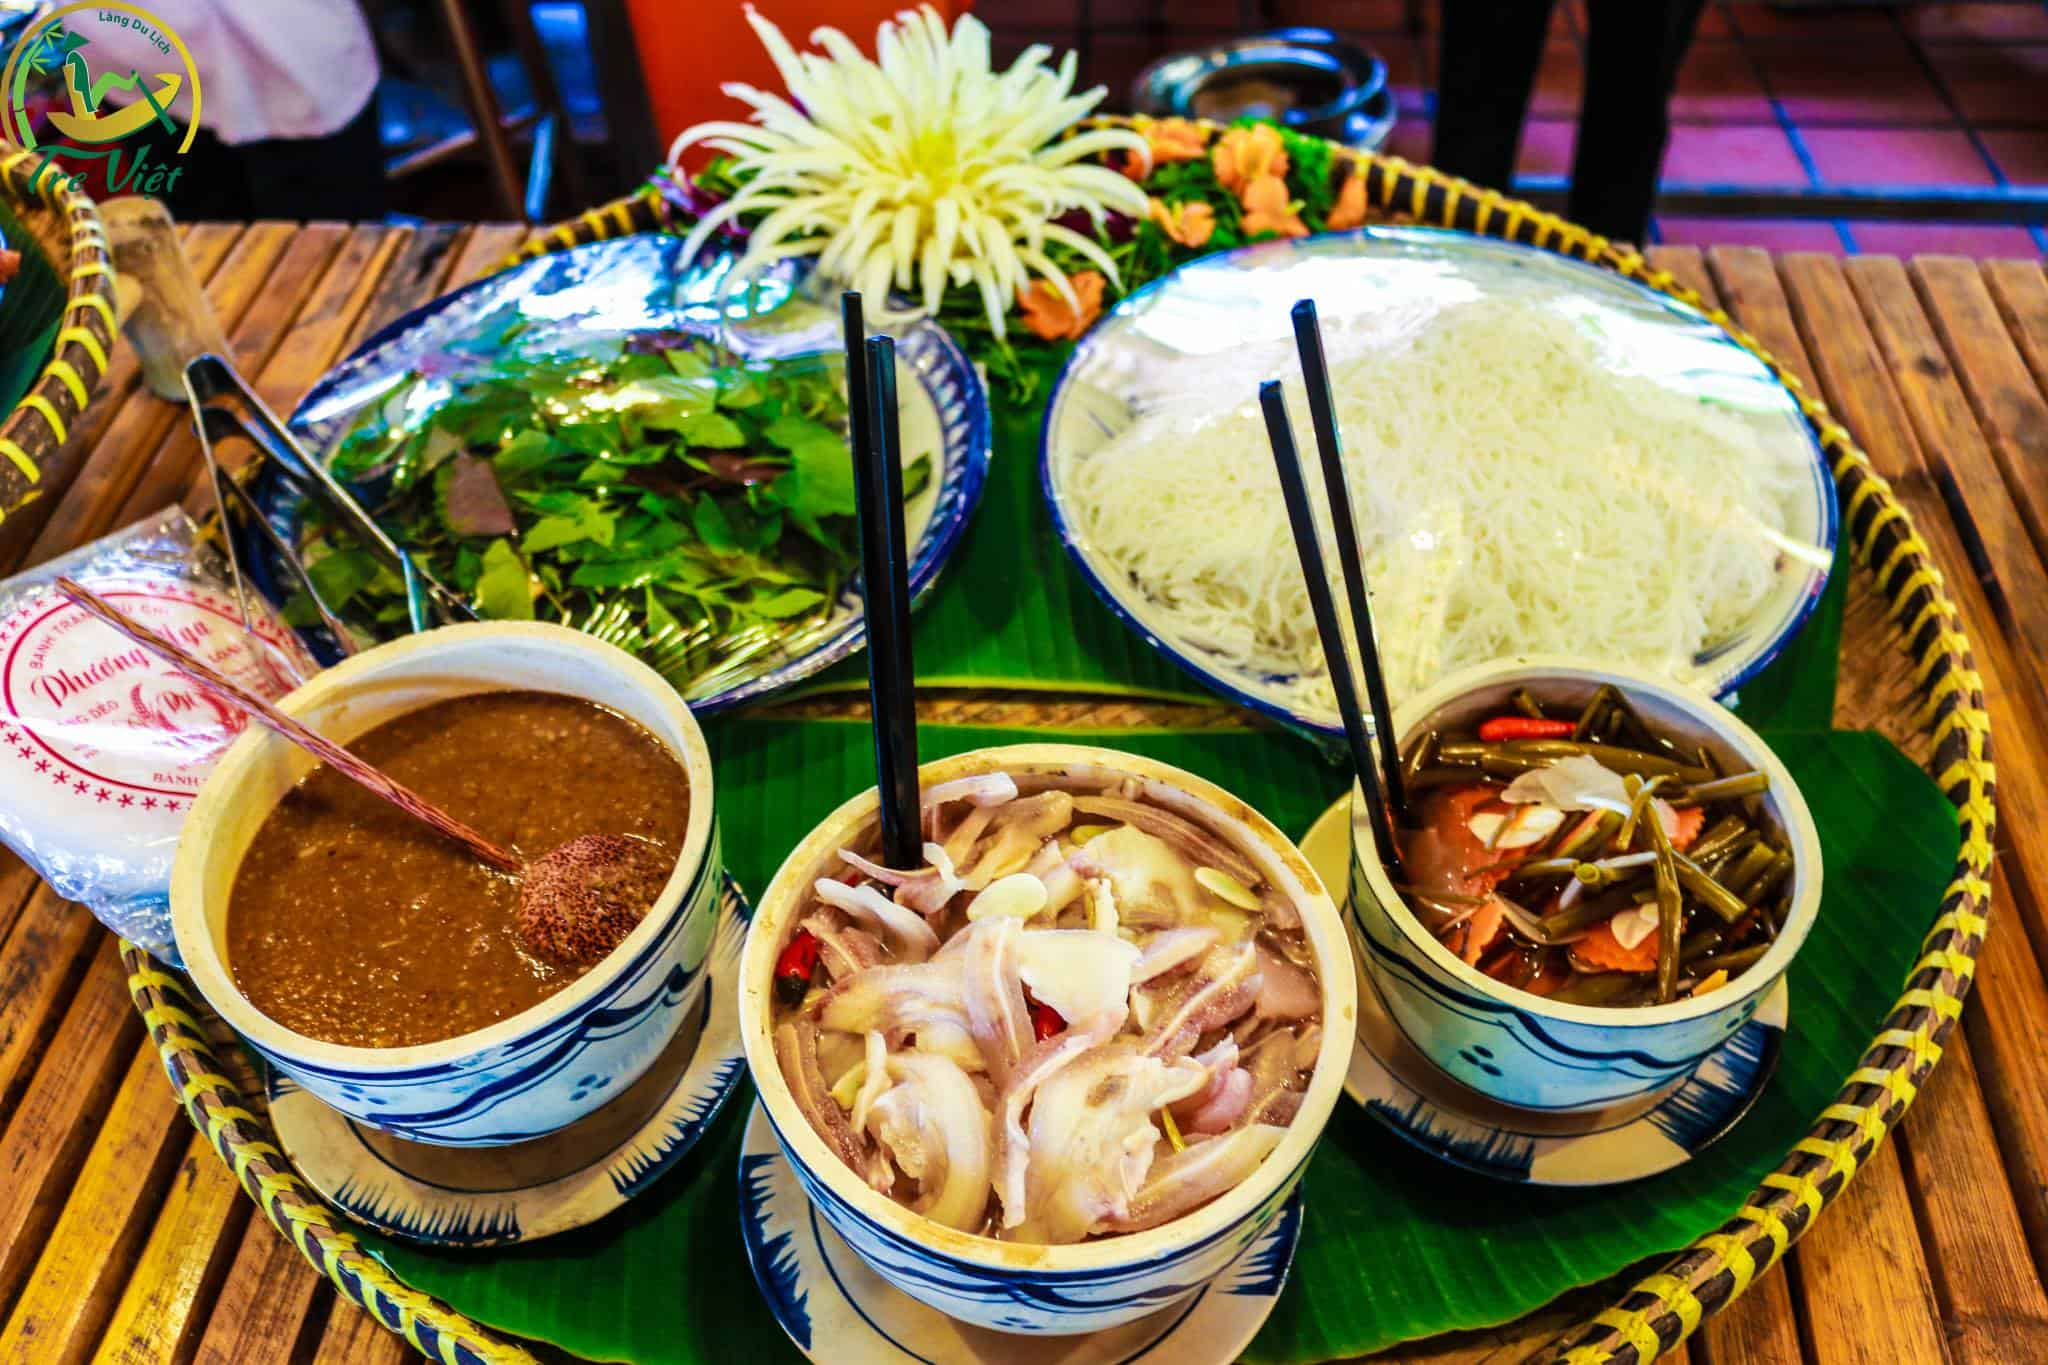 The idyllic cuisine is extremely rich and delicious